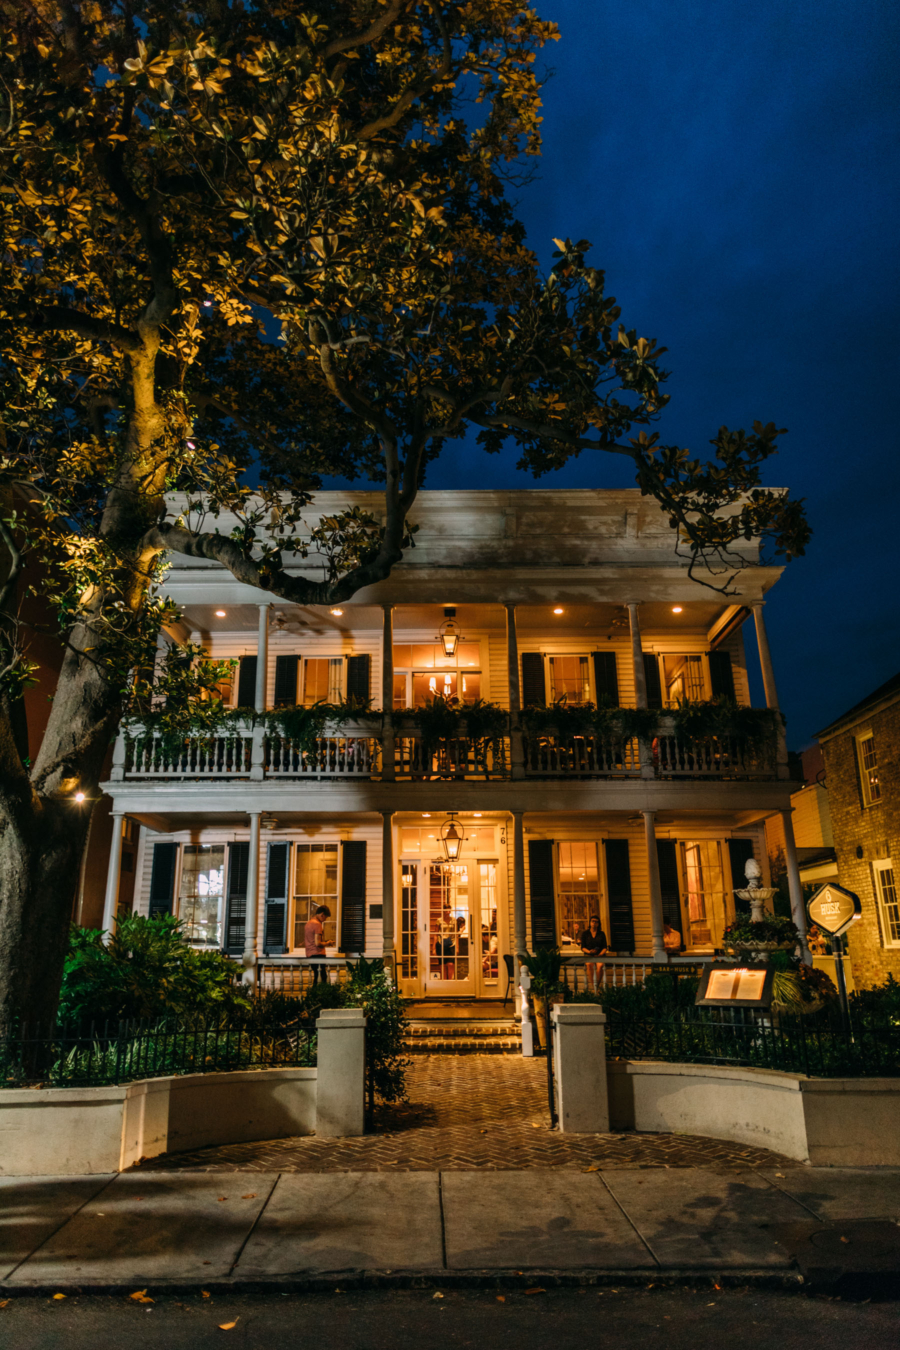 Charleston Homes at Night - Travel Guide: 36 hours in Charleston, SC // NotJessFashion.com